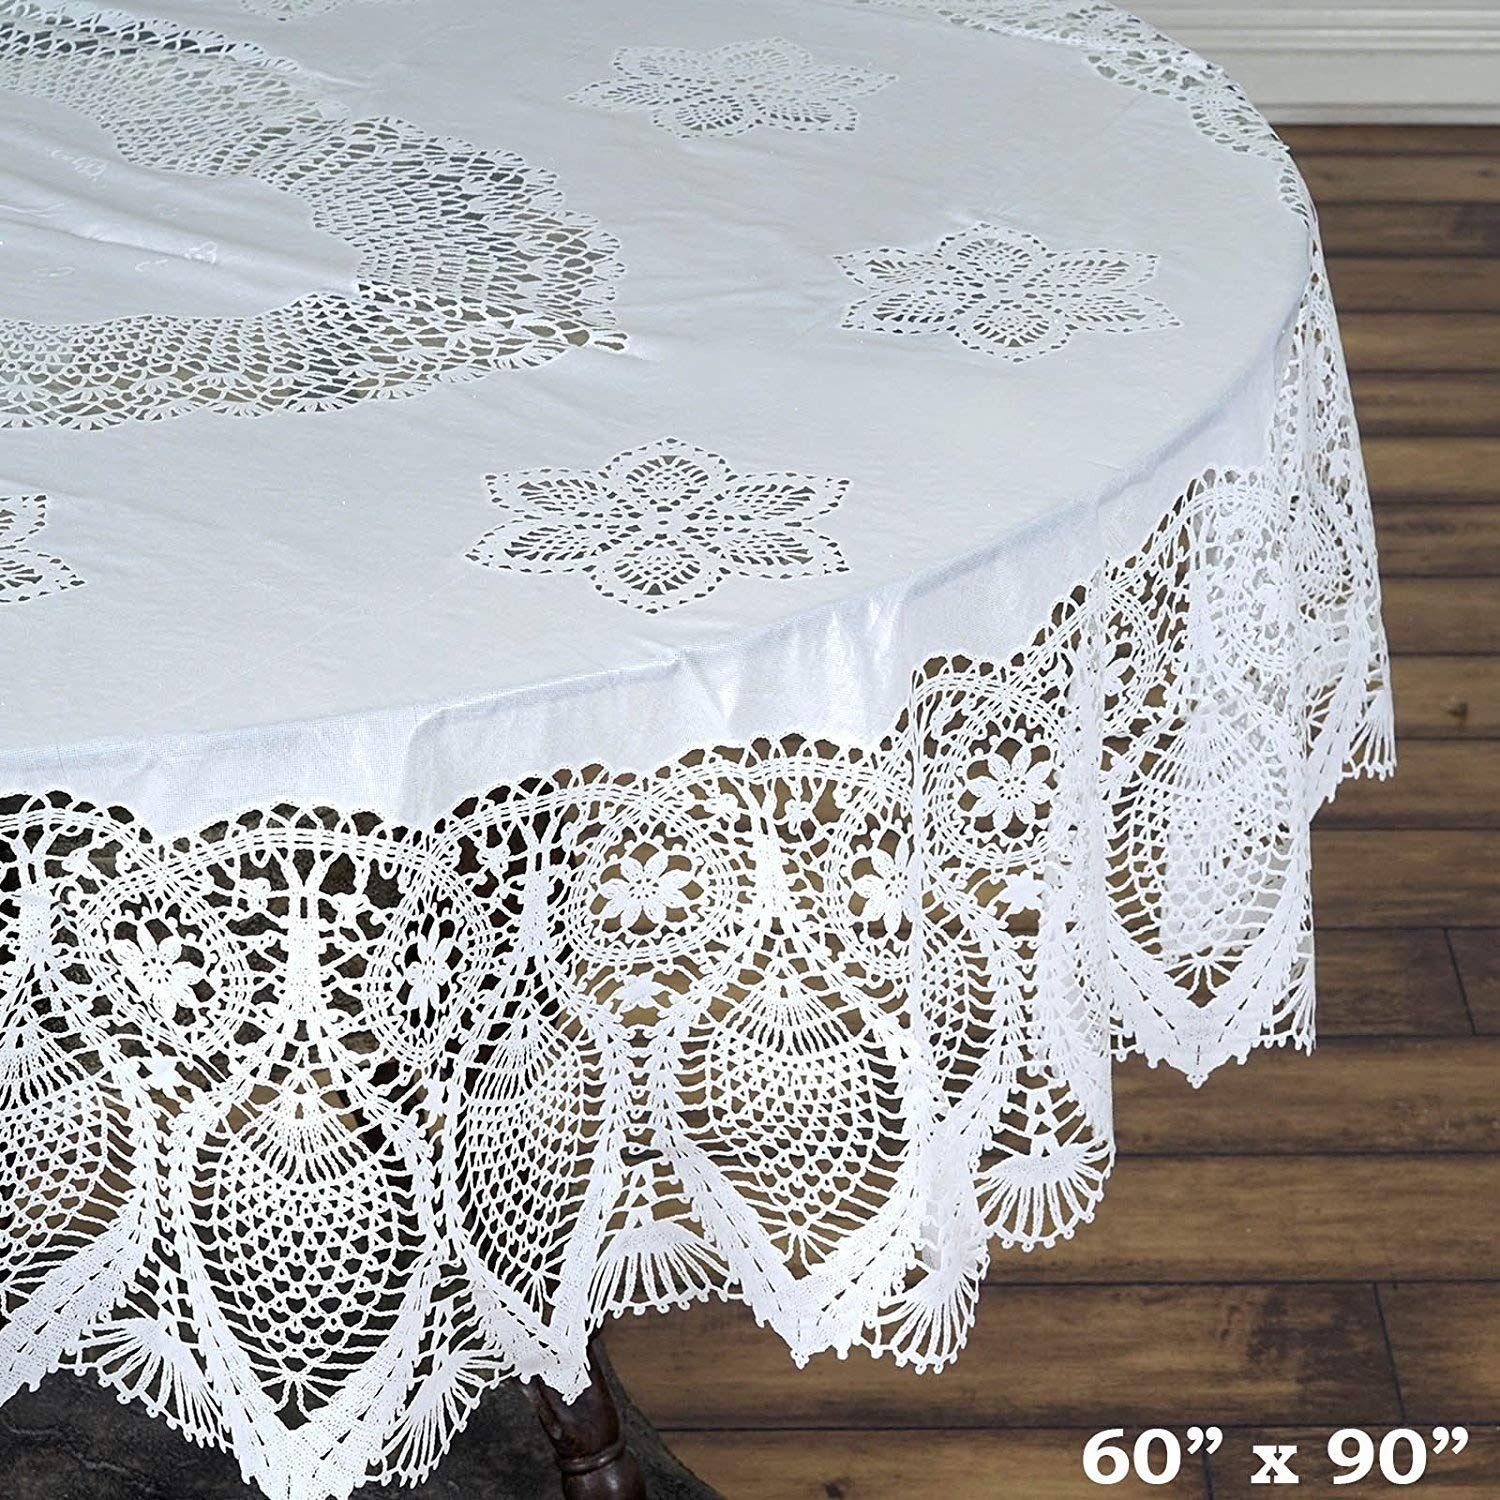 "Efavormart 60""x90"" Eco-Friendly White 0.6mil Thick Disposable Waterproof Oval Vinyl Tablecloth Protector Cover"